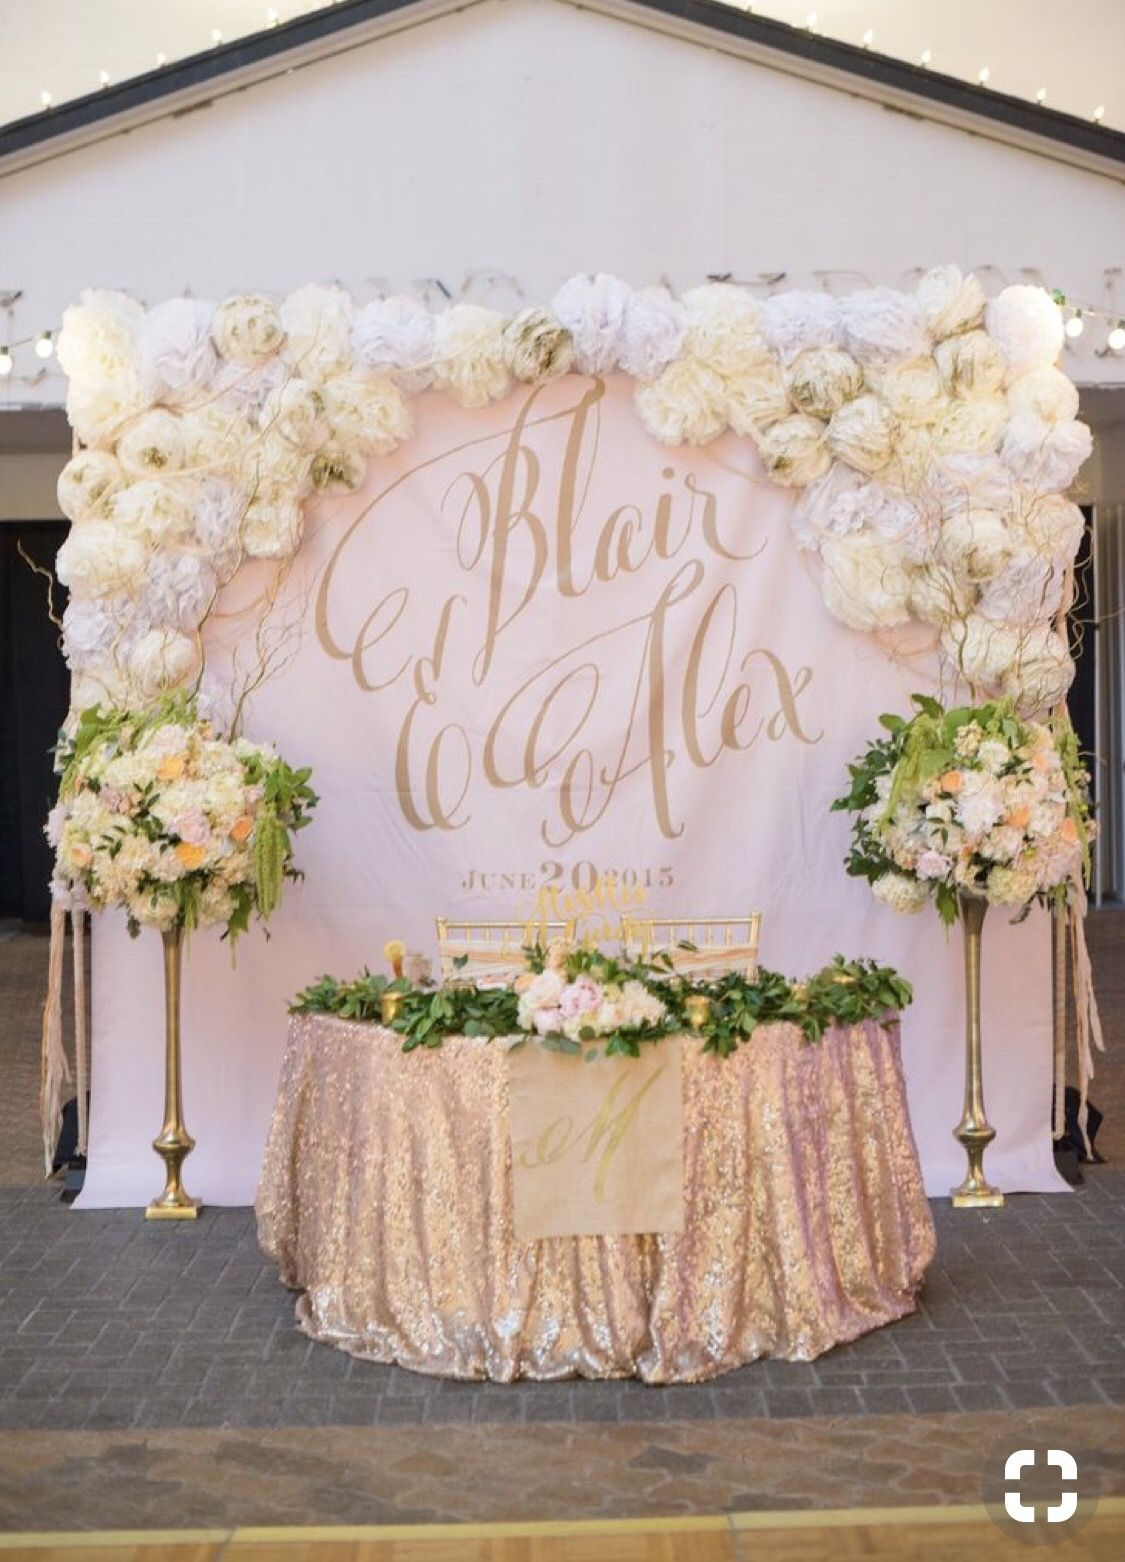 Rose gold wedding decor image by BrittanyDaywn on Glam